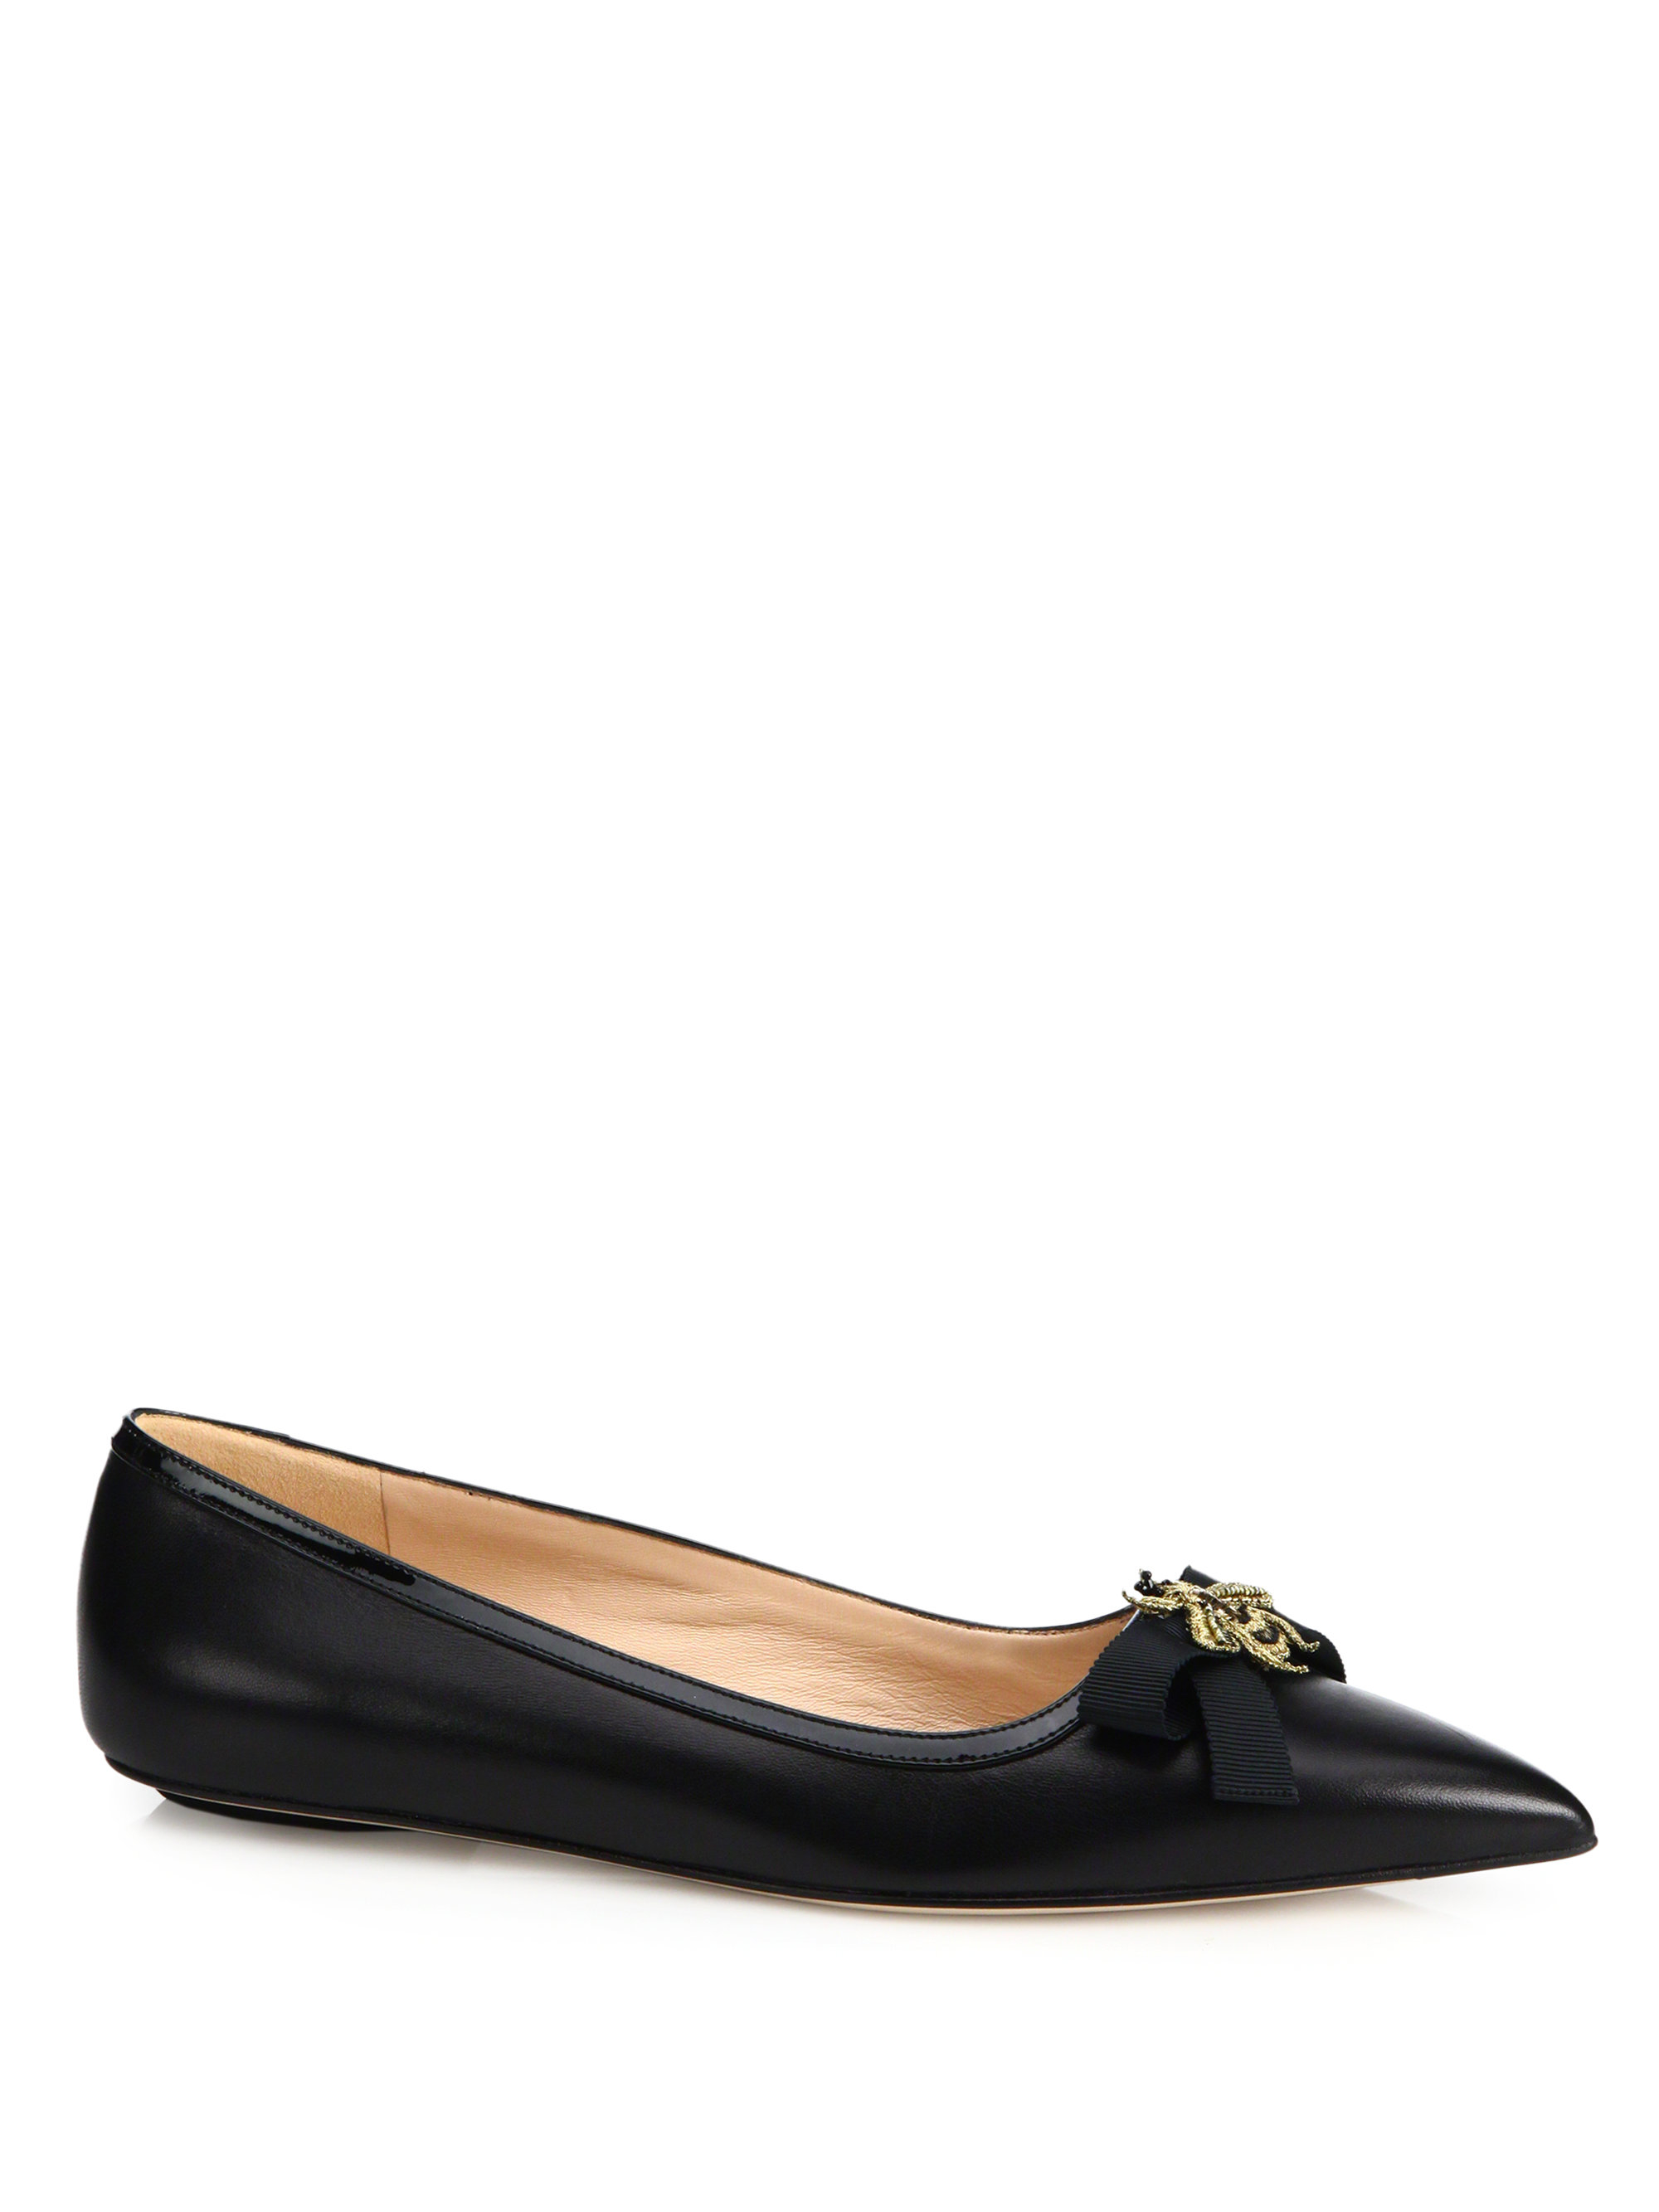 Gucci Moody Bee Leather Ballet Flats in